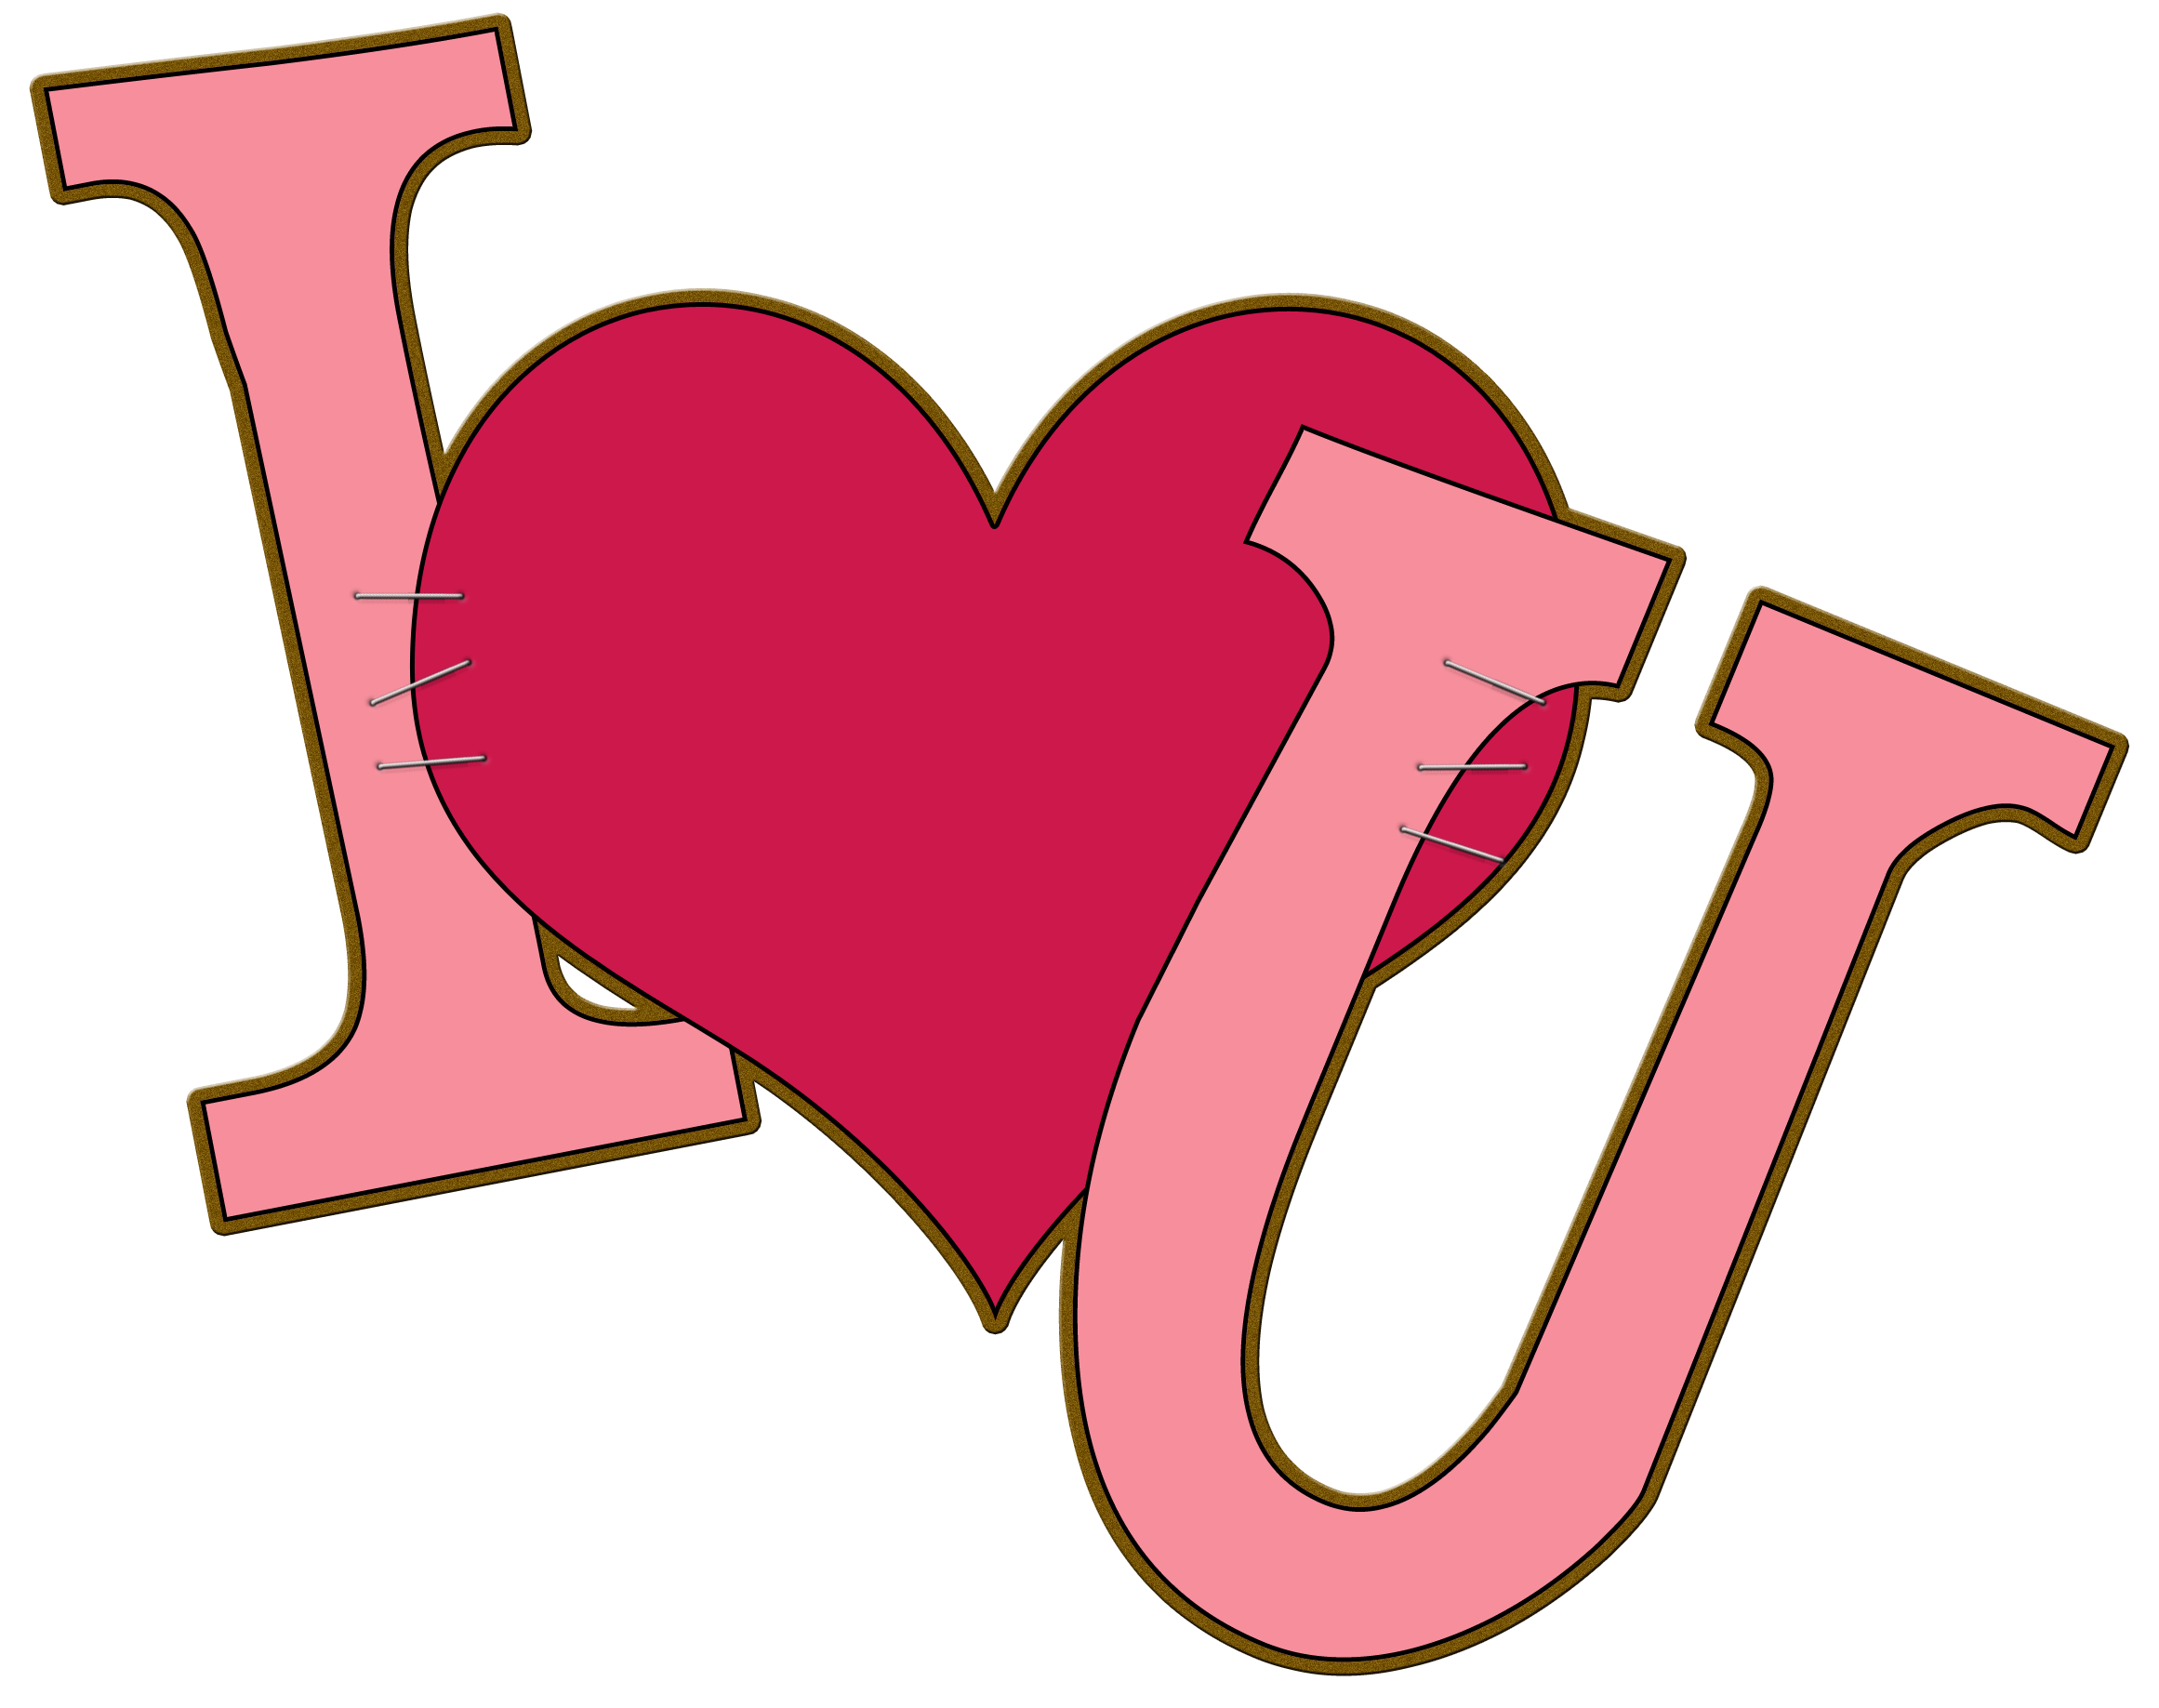 In love clipart clipart vector library stock Free Love Clipart & Love Clip Art Images - ClipartALL.com vector library stock